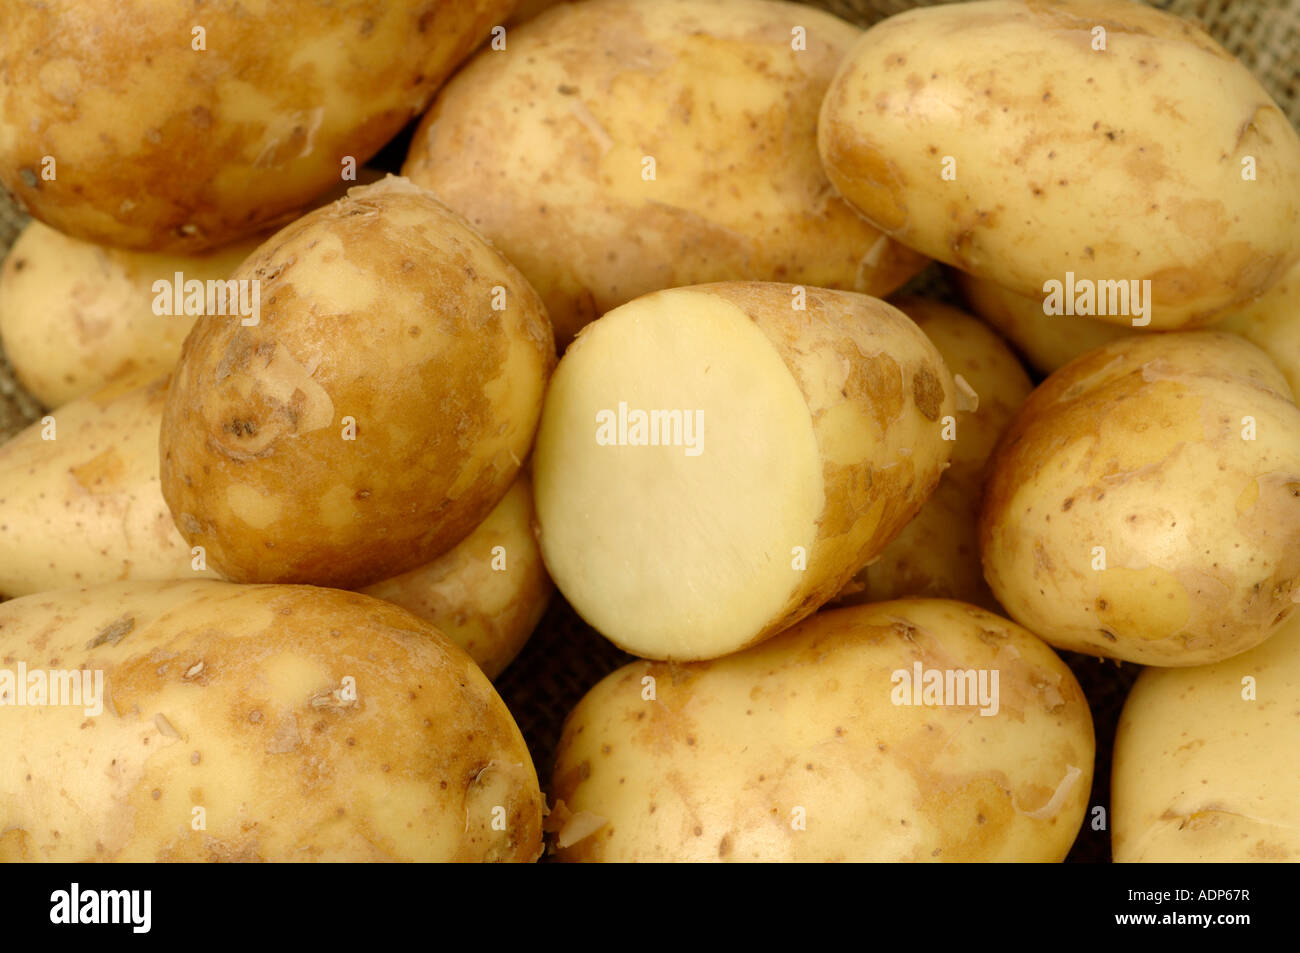 Jersey Royal potatoes ex supermarket shop bought tubers - Stock Image